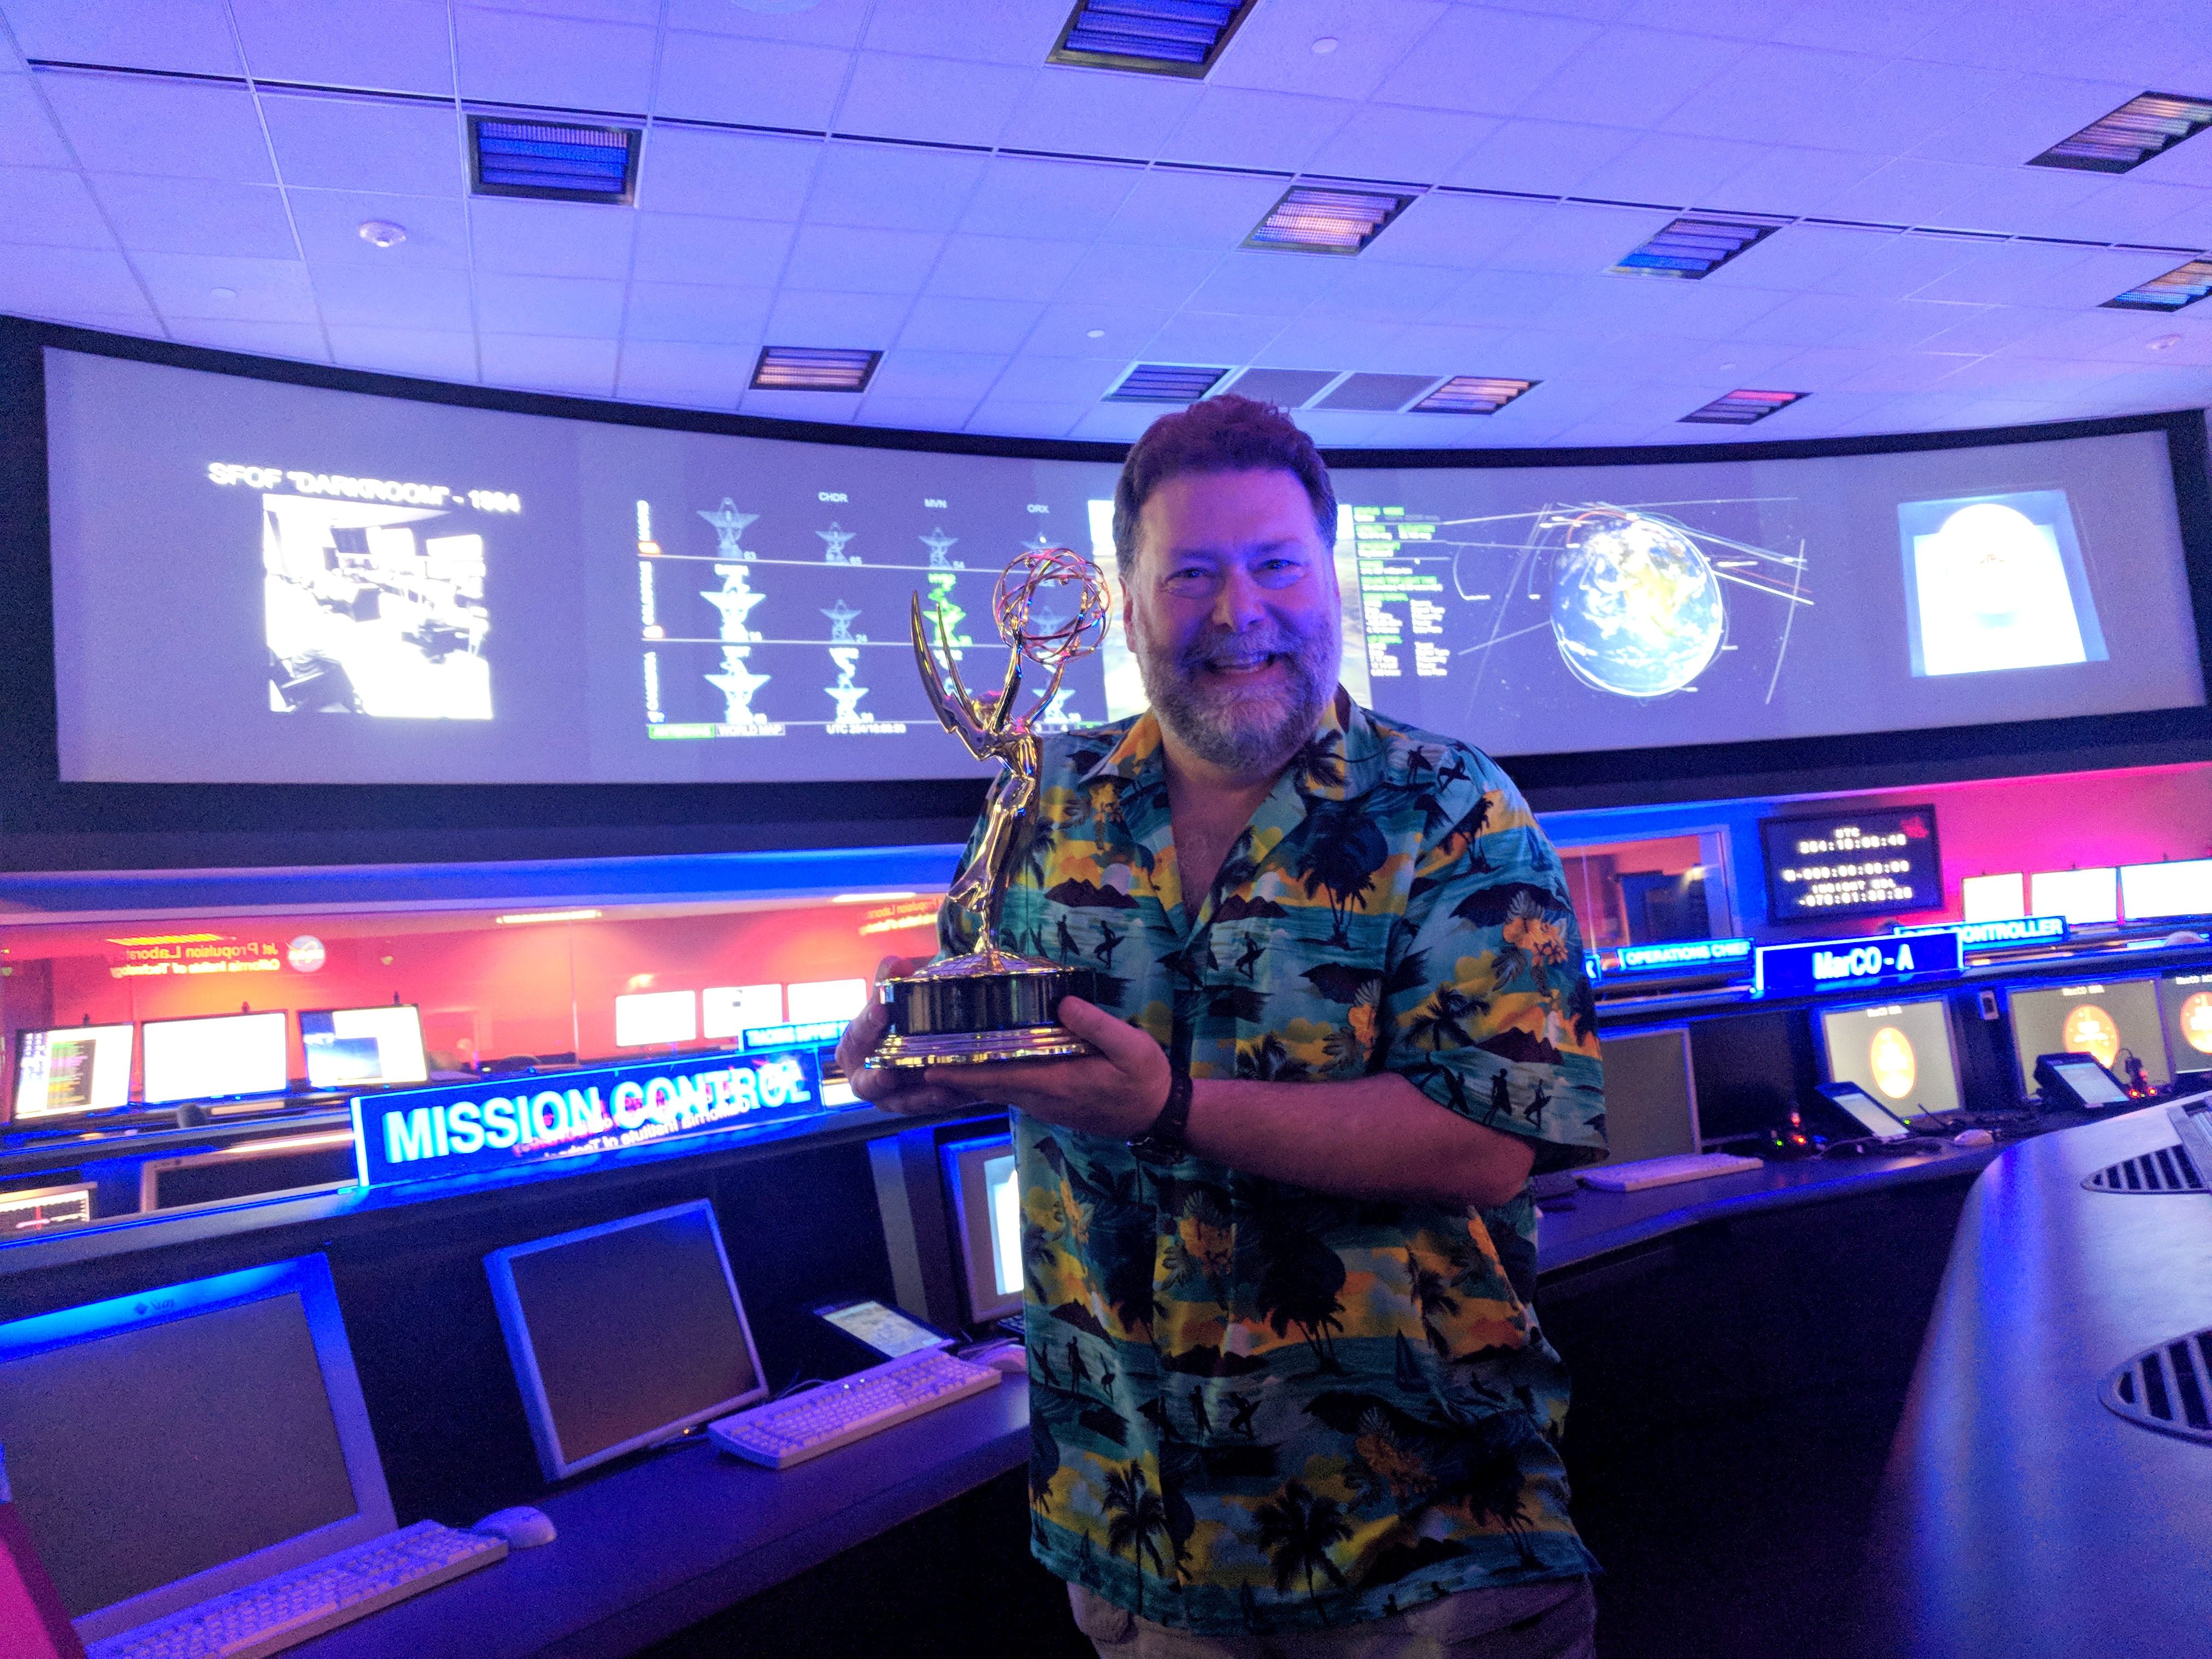 Todd in mission control holding an Emmy award statue.